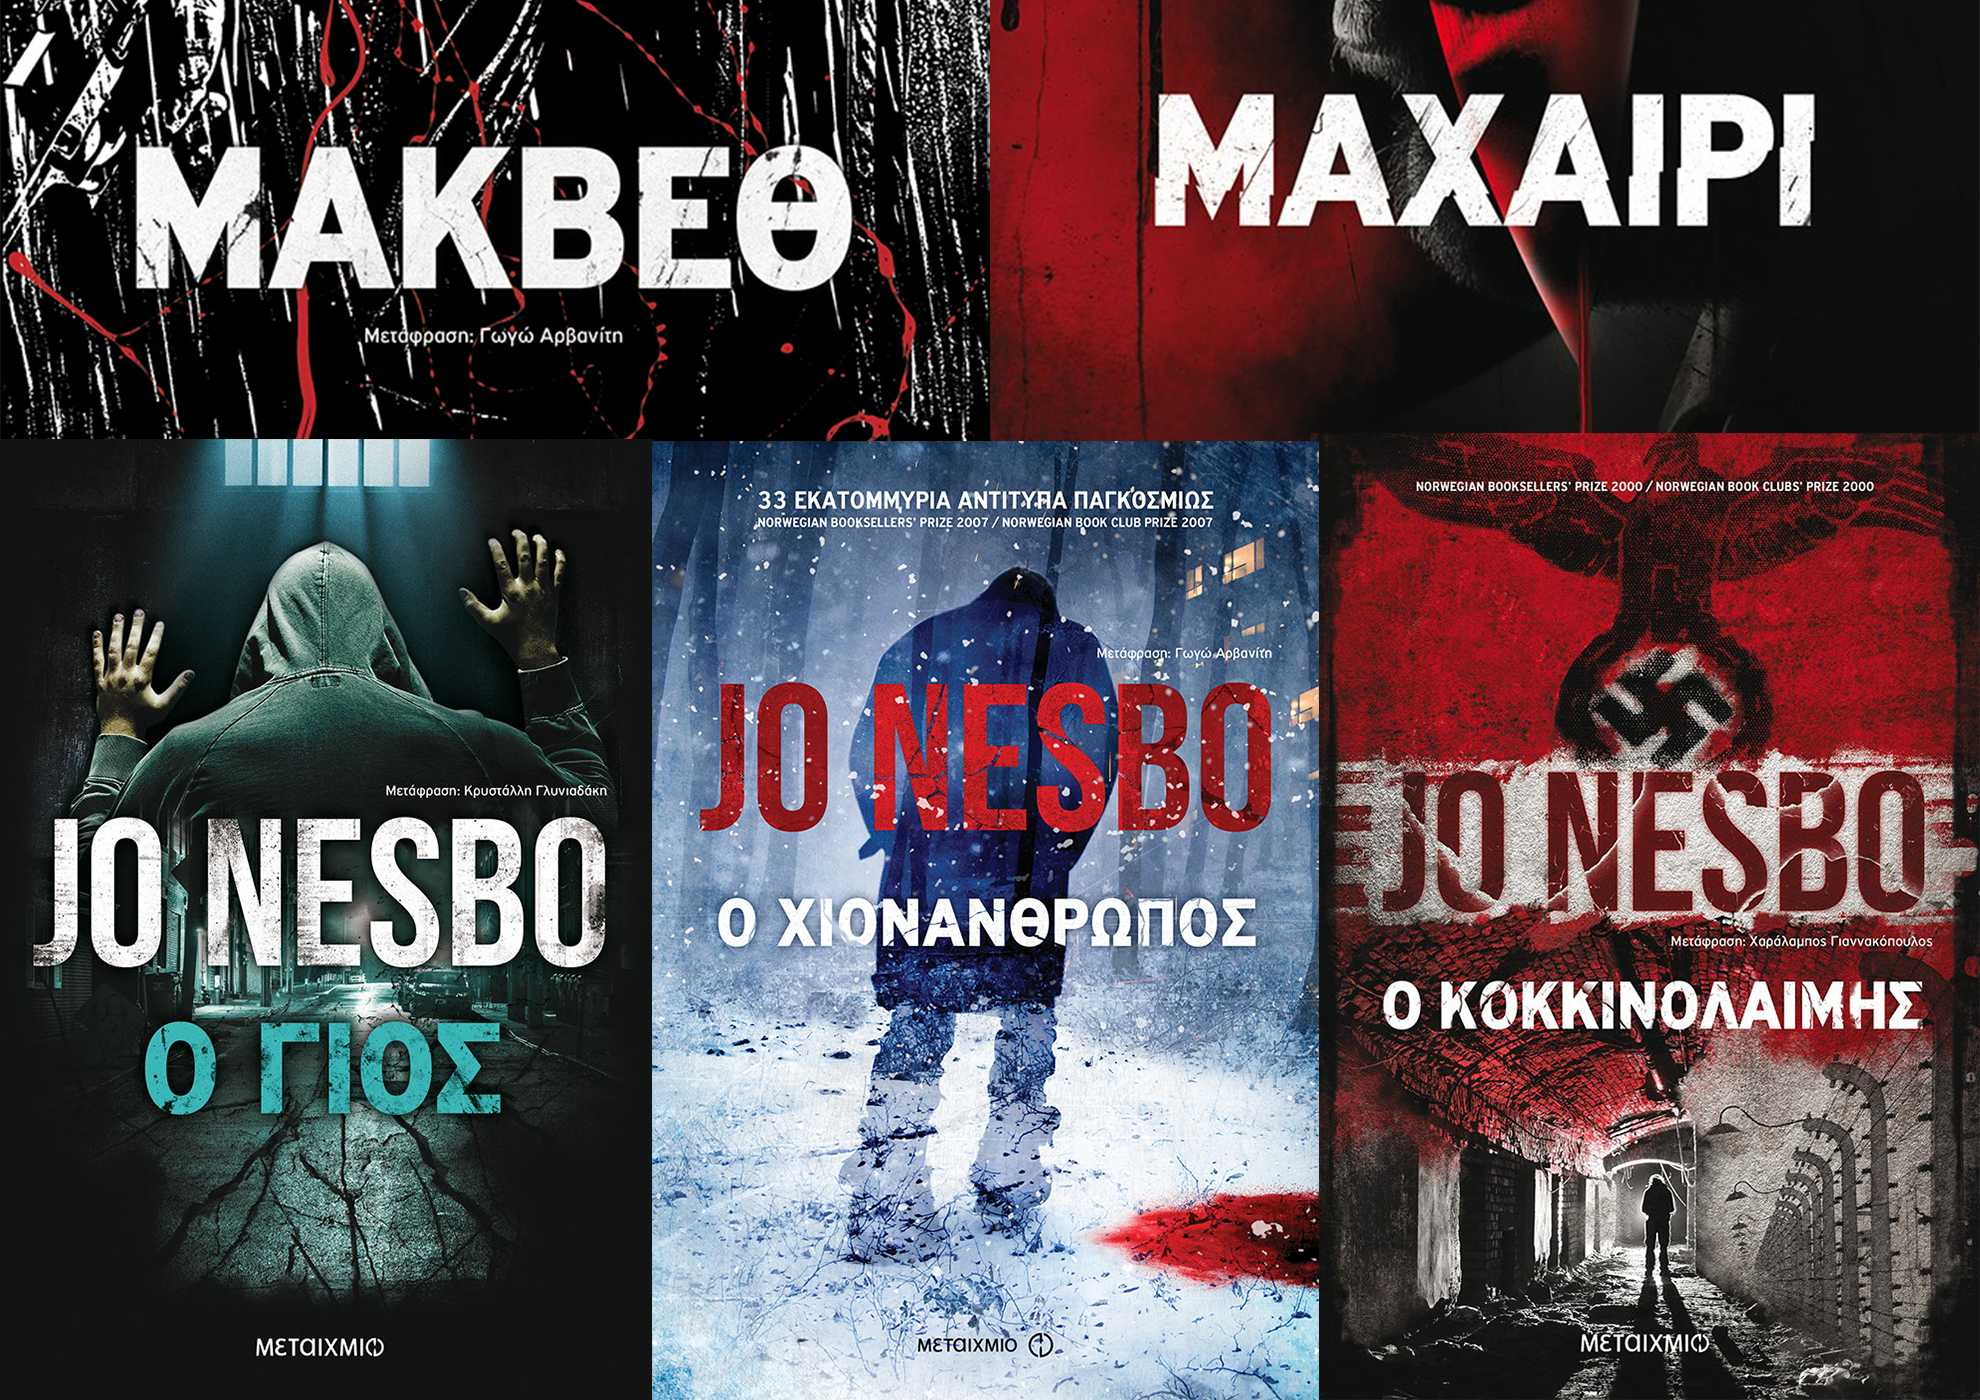 Ebooks Metaixmio 5 - Nesbo